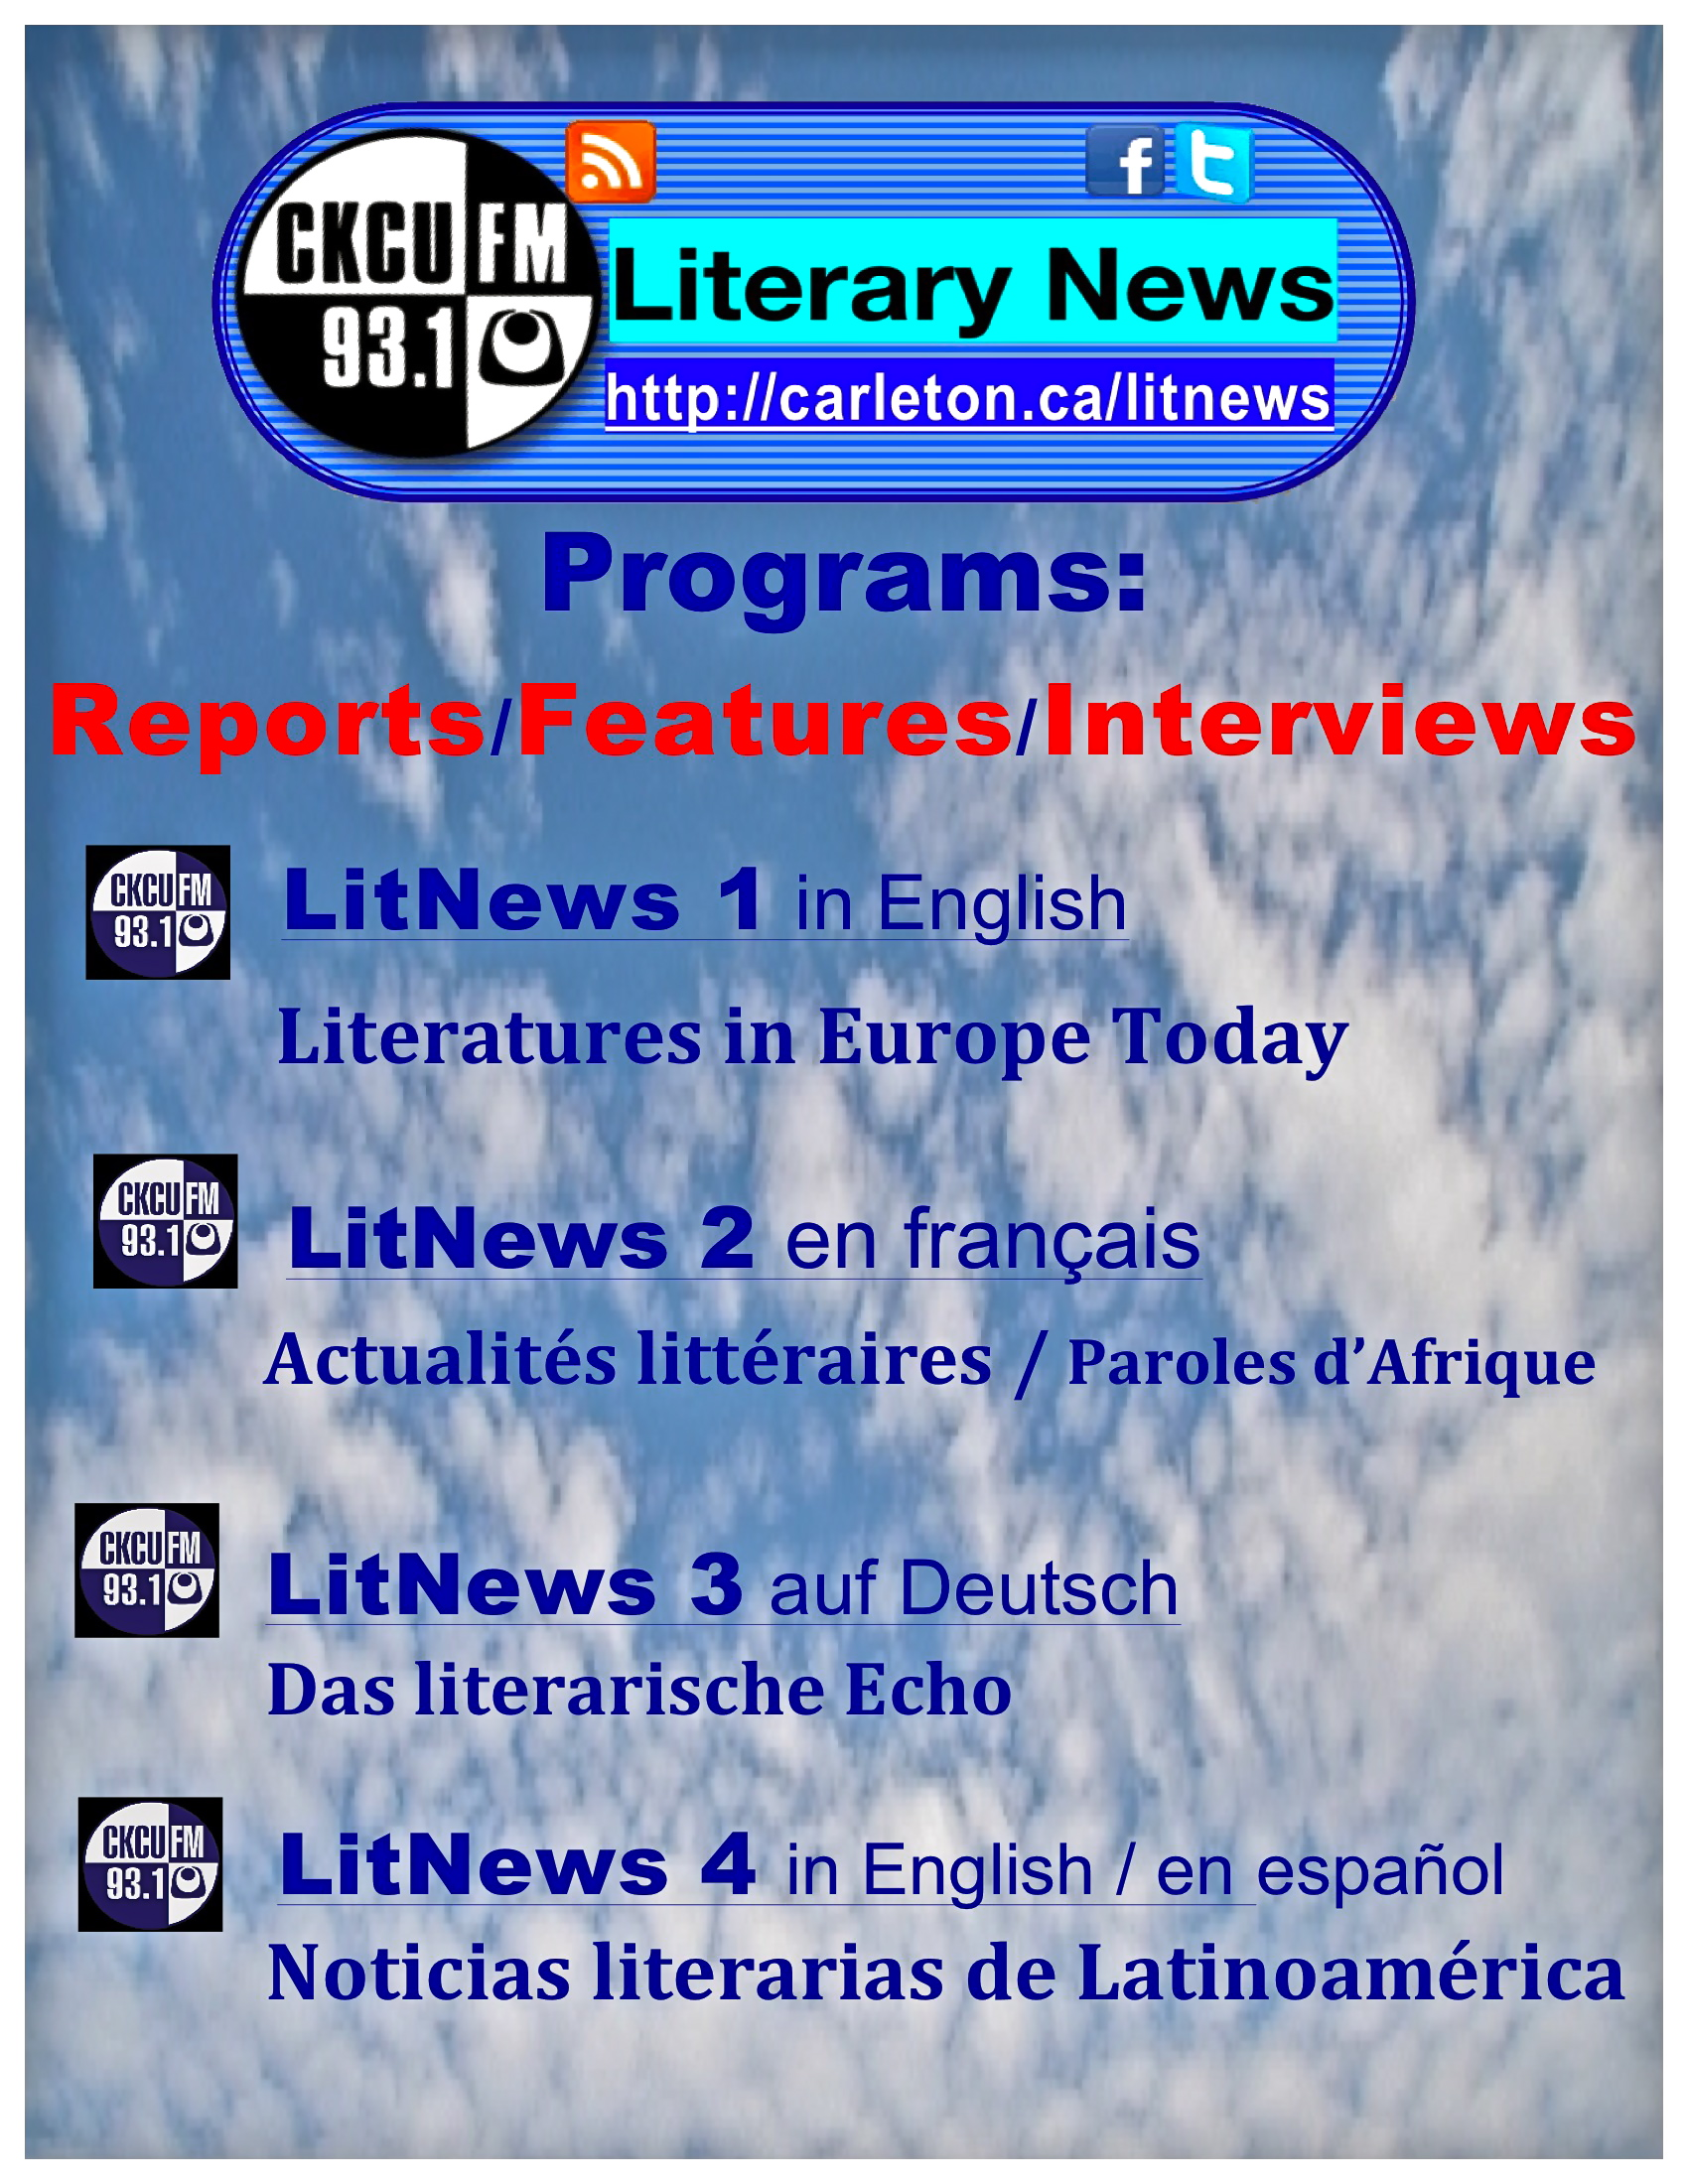 CKCU Literary News Programs